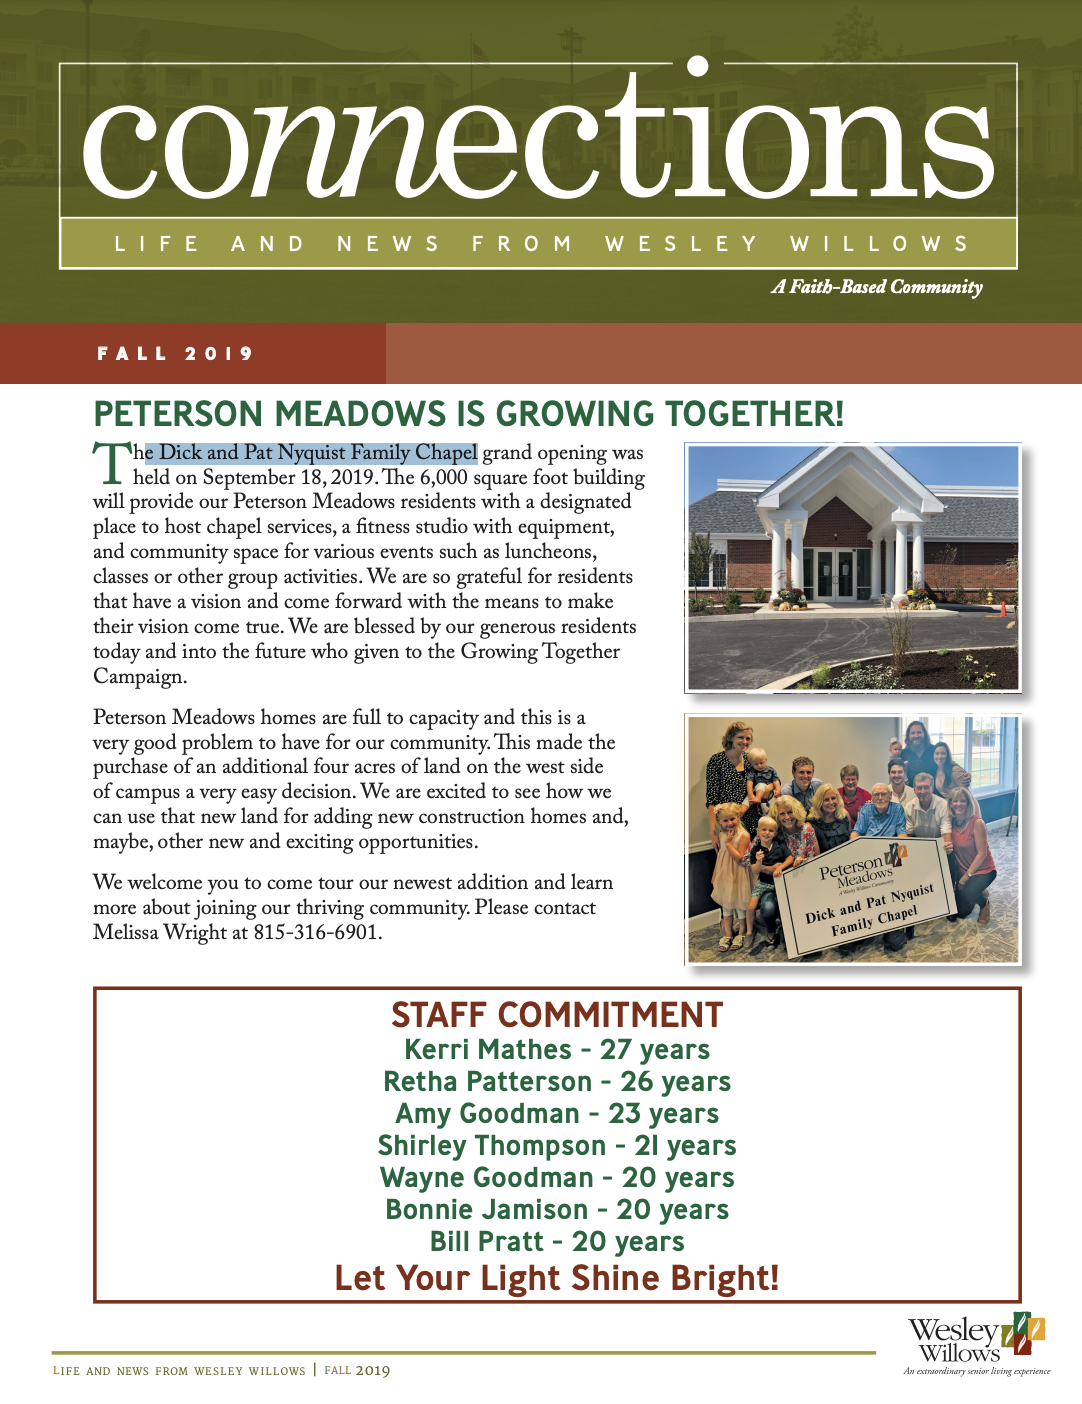 Image of the cover of the Fall 2019 Newsletter